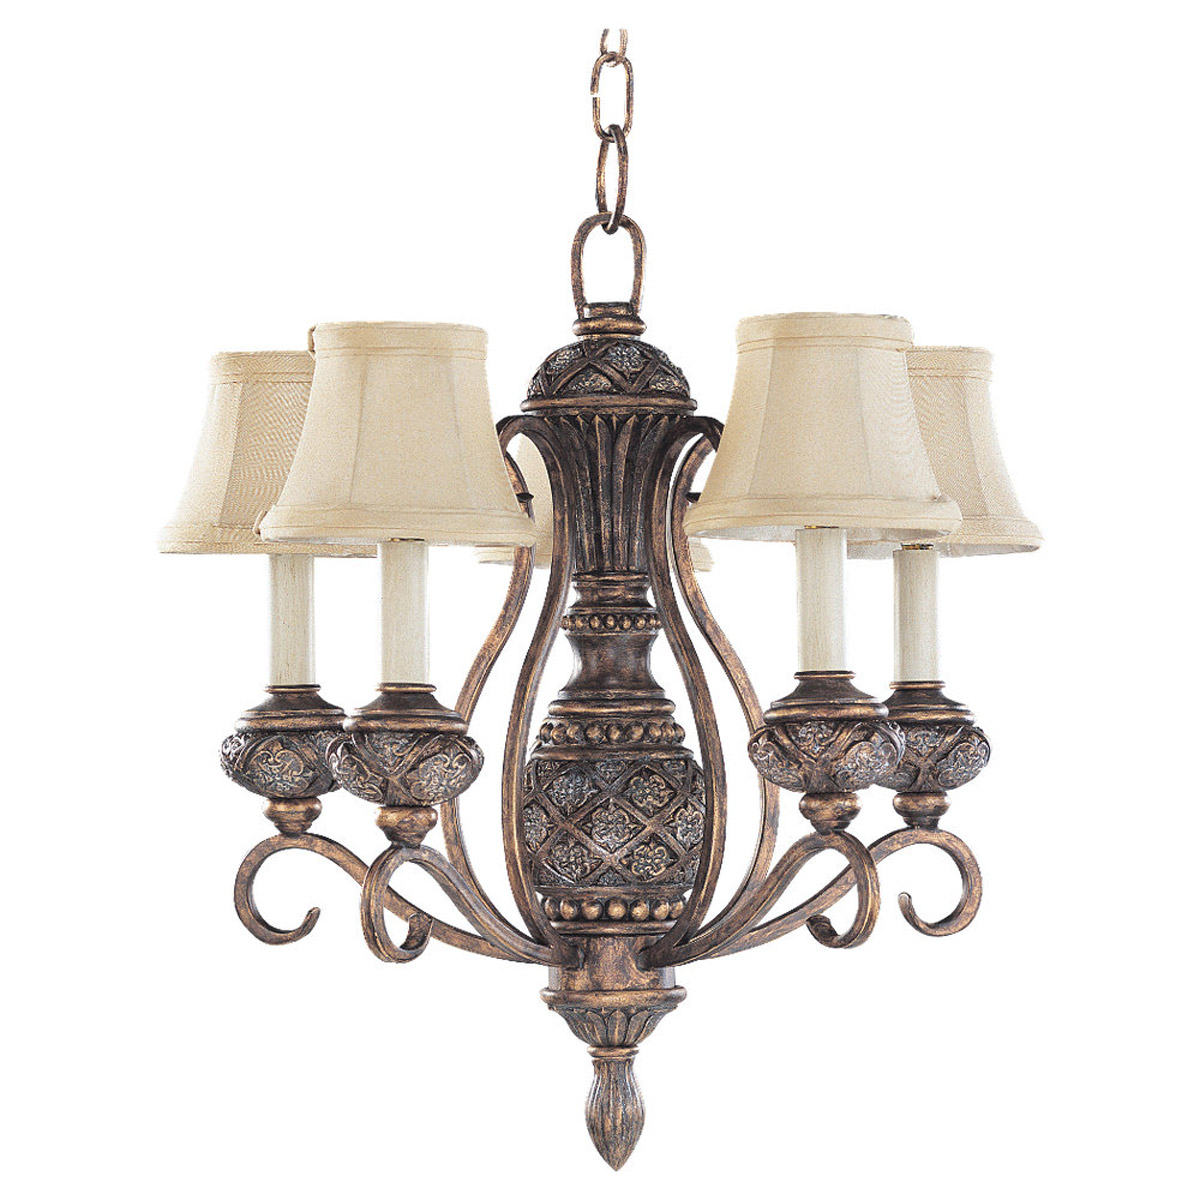 Sea Gull Lighting Highlands 5 Light Chandelier in Regal Bronze 30251-758 photo